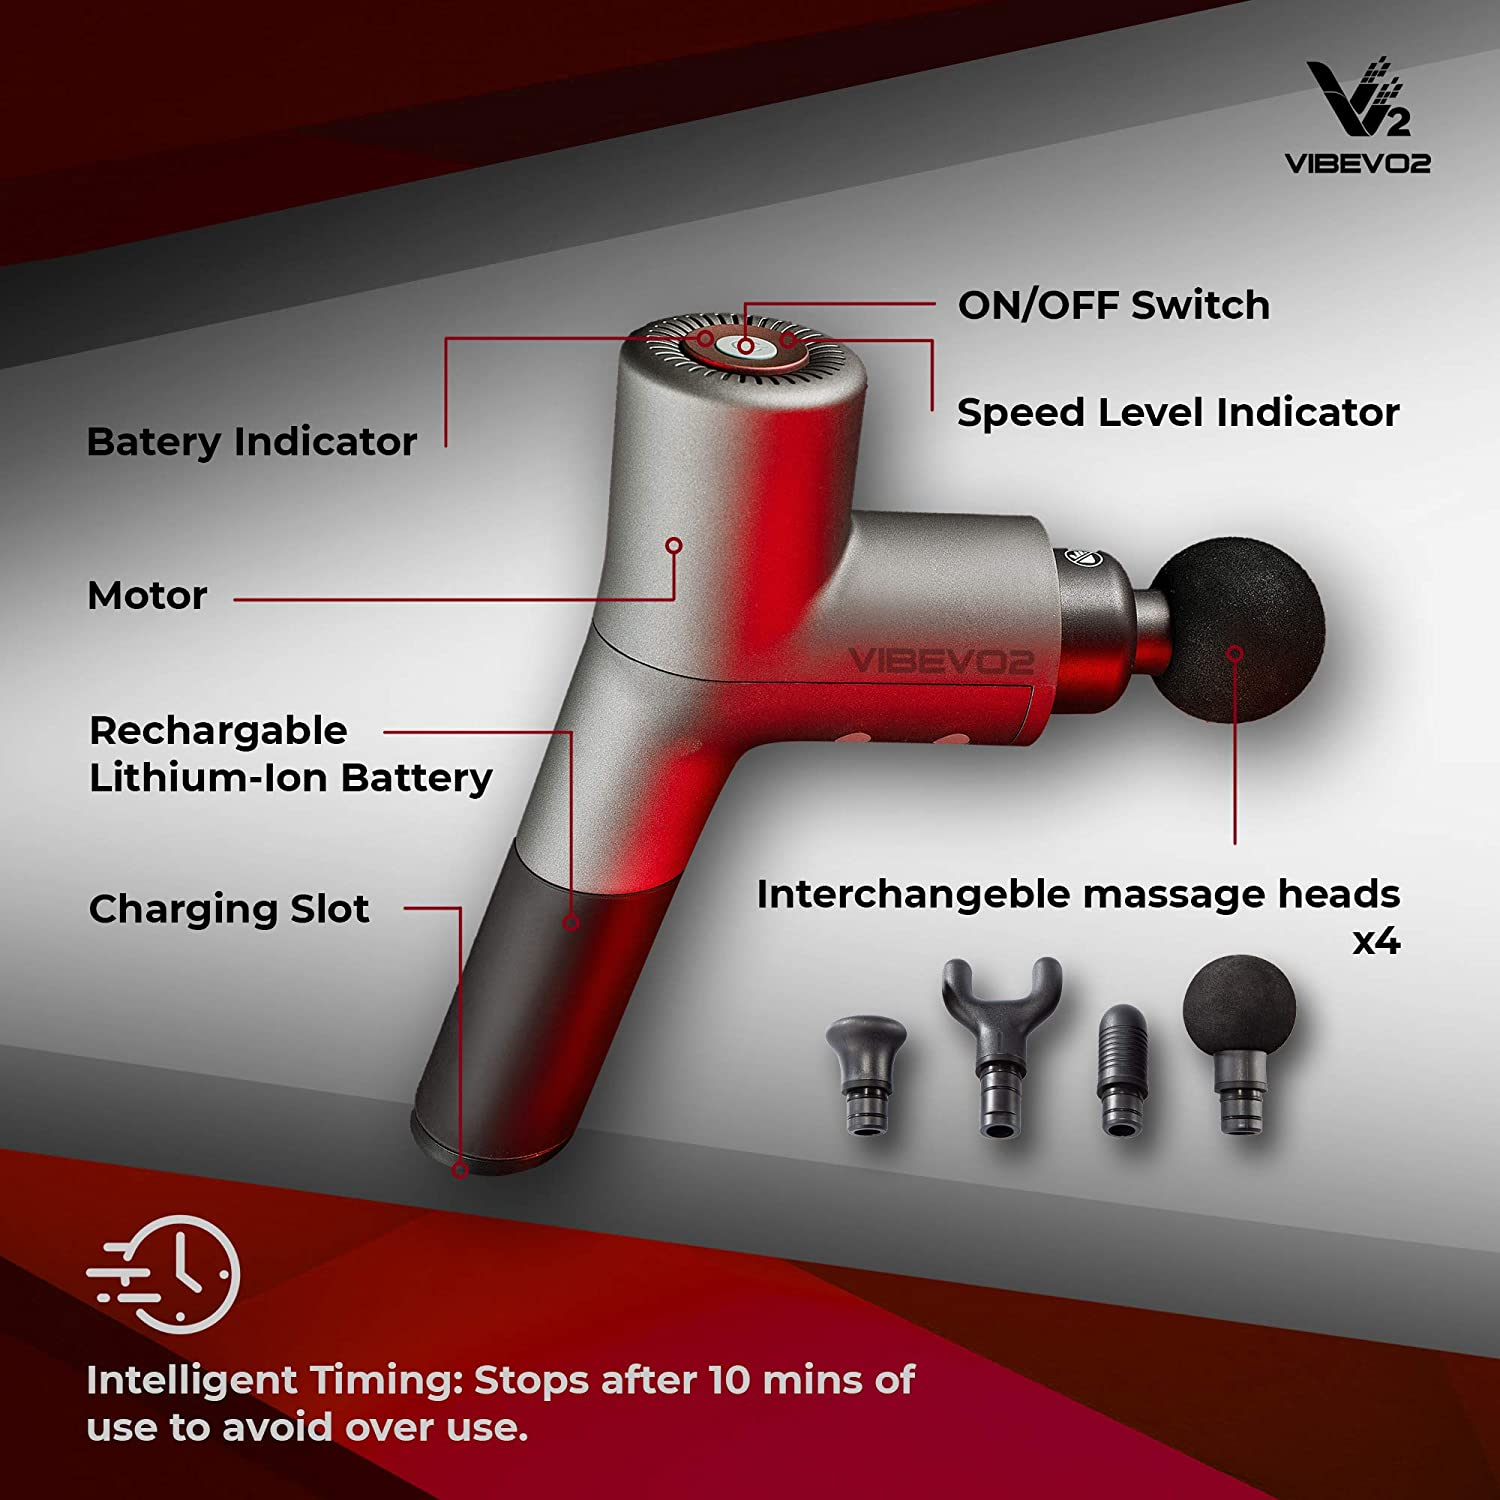 Vibevo2 Handheld Percussion Massage Gun- Quietest Cordless Vibration Device- Deep Tissue Massager- Great for Muscle Stimulation, Crossfit, Body Pain Relief, Muscle Soreness and Stiffness.